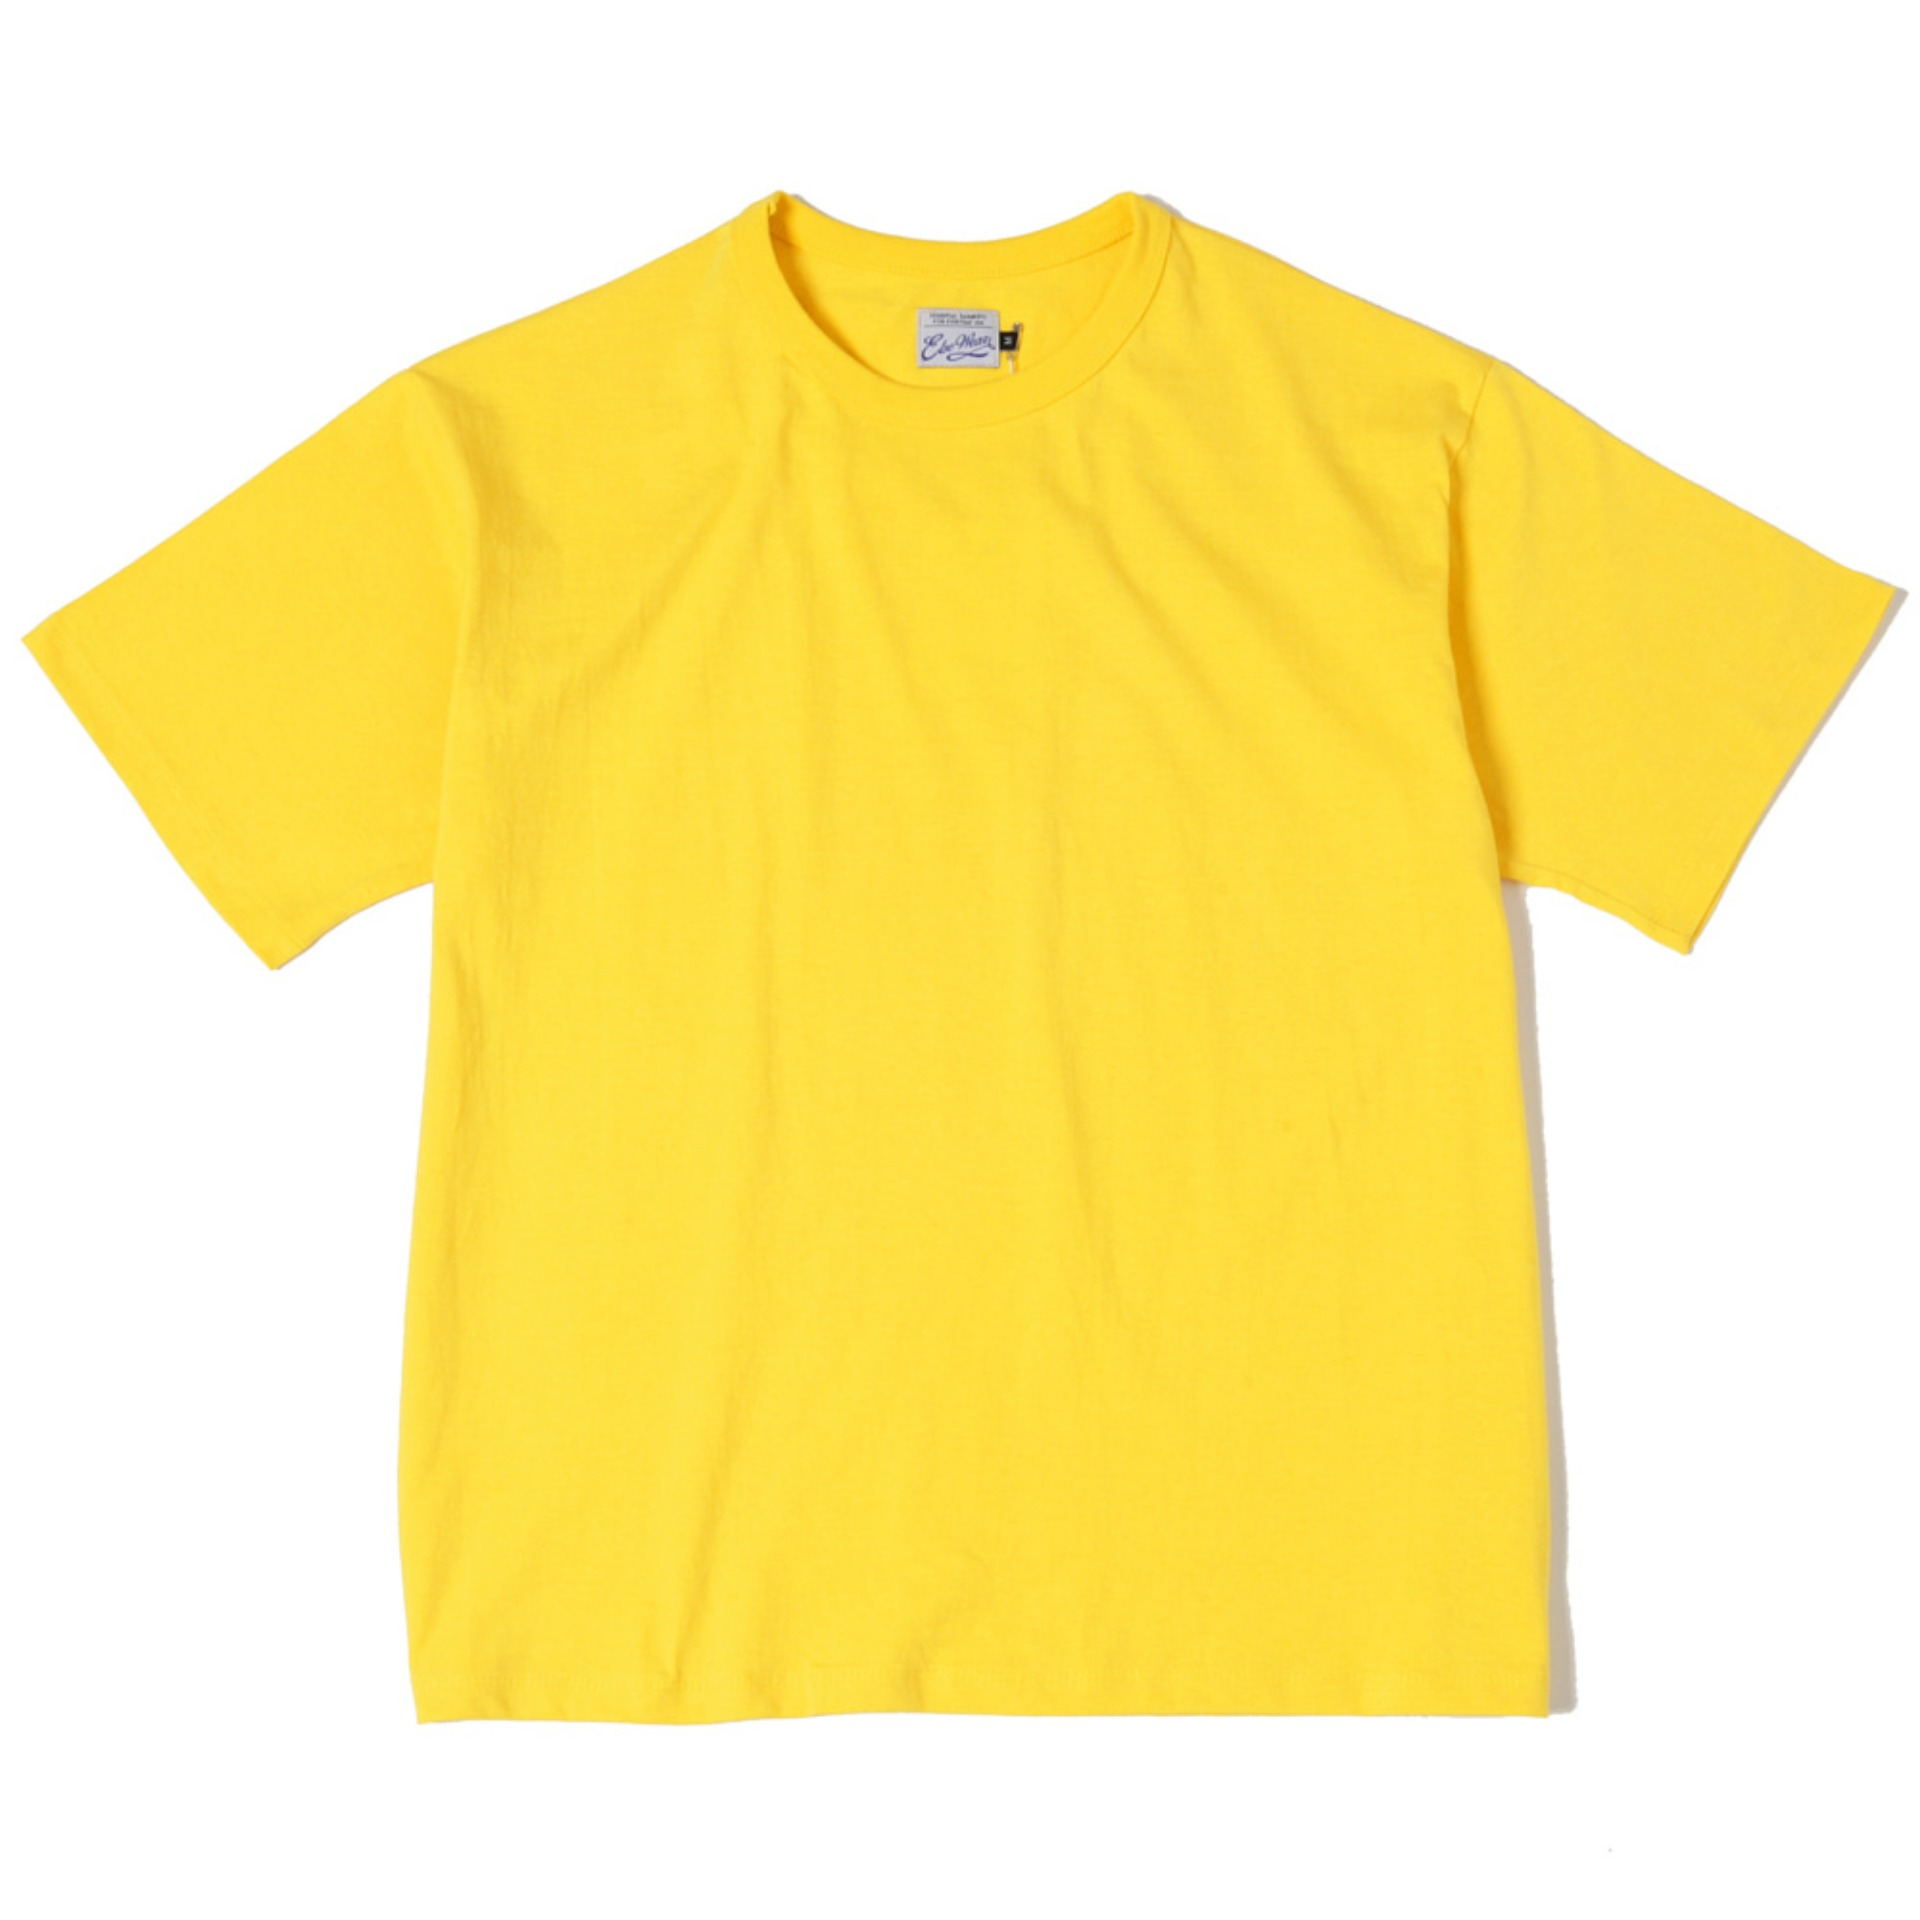 BLANK T-SHIRTS(YELLOW)